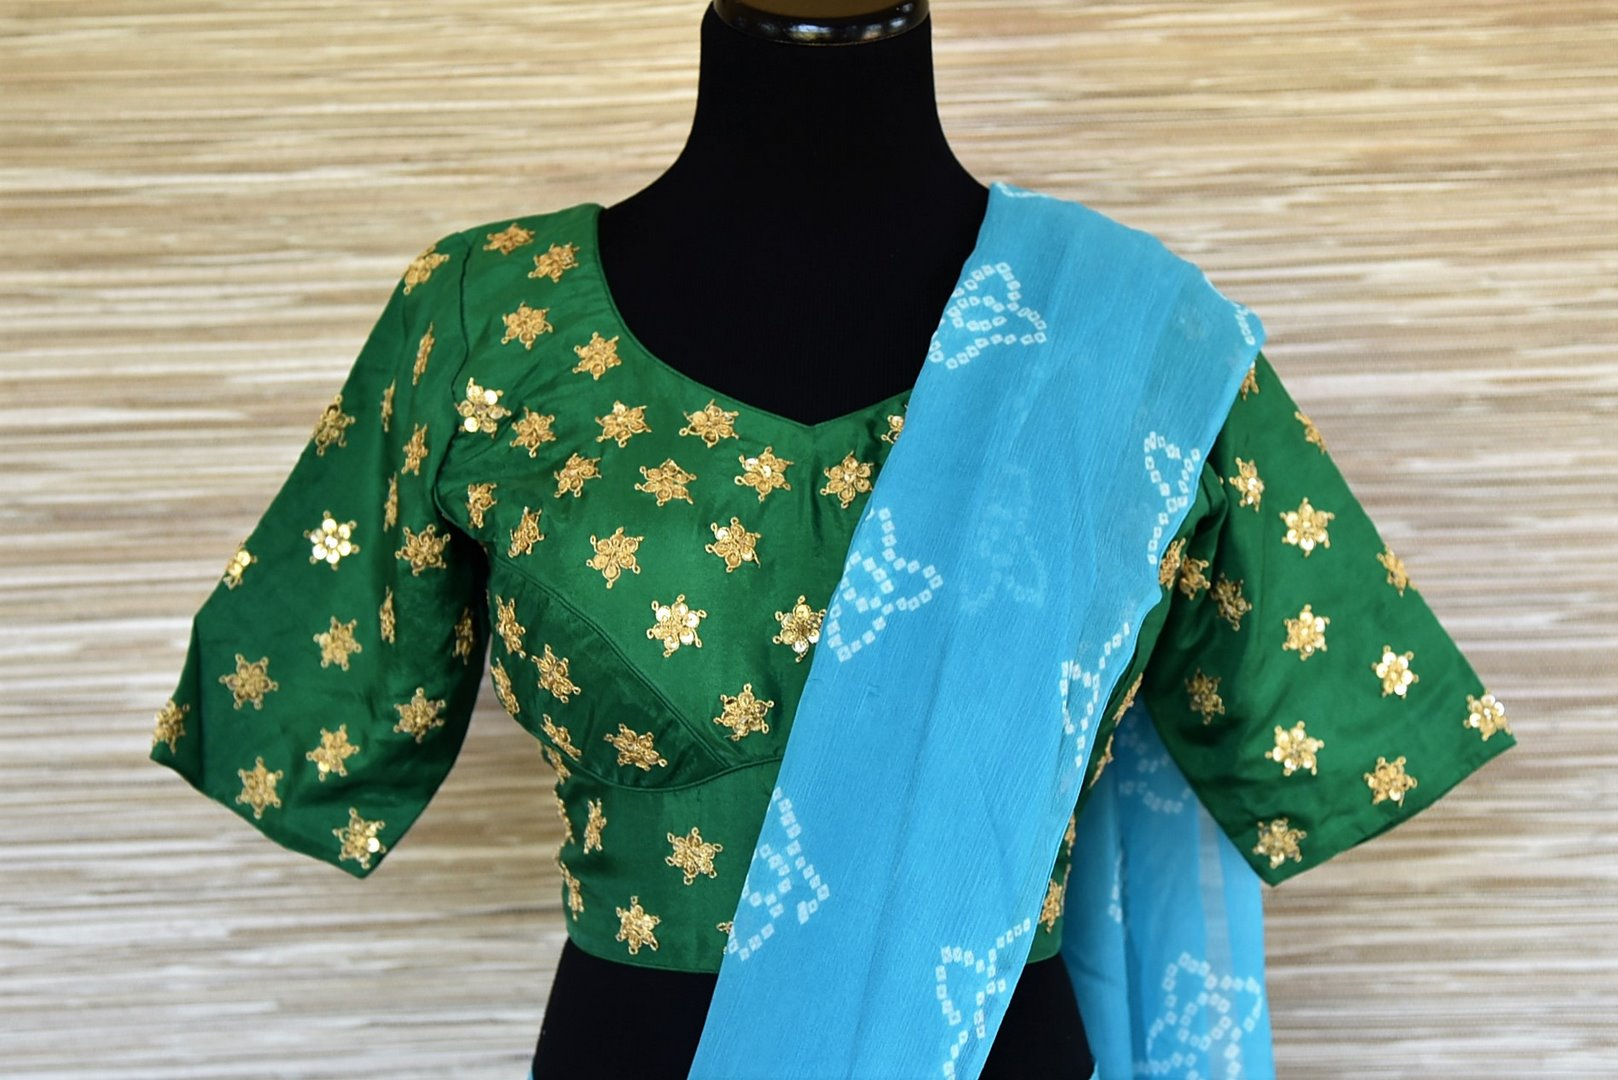 Shop elegant sky blue Bandhej chiffon saree online in USA with embroidered green saree blouse. Be an epitome of elegance and tradition in exquisite designer saris, handwoven saris from Pure Elegance clothing store in USA. -blouse pallu